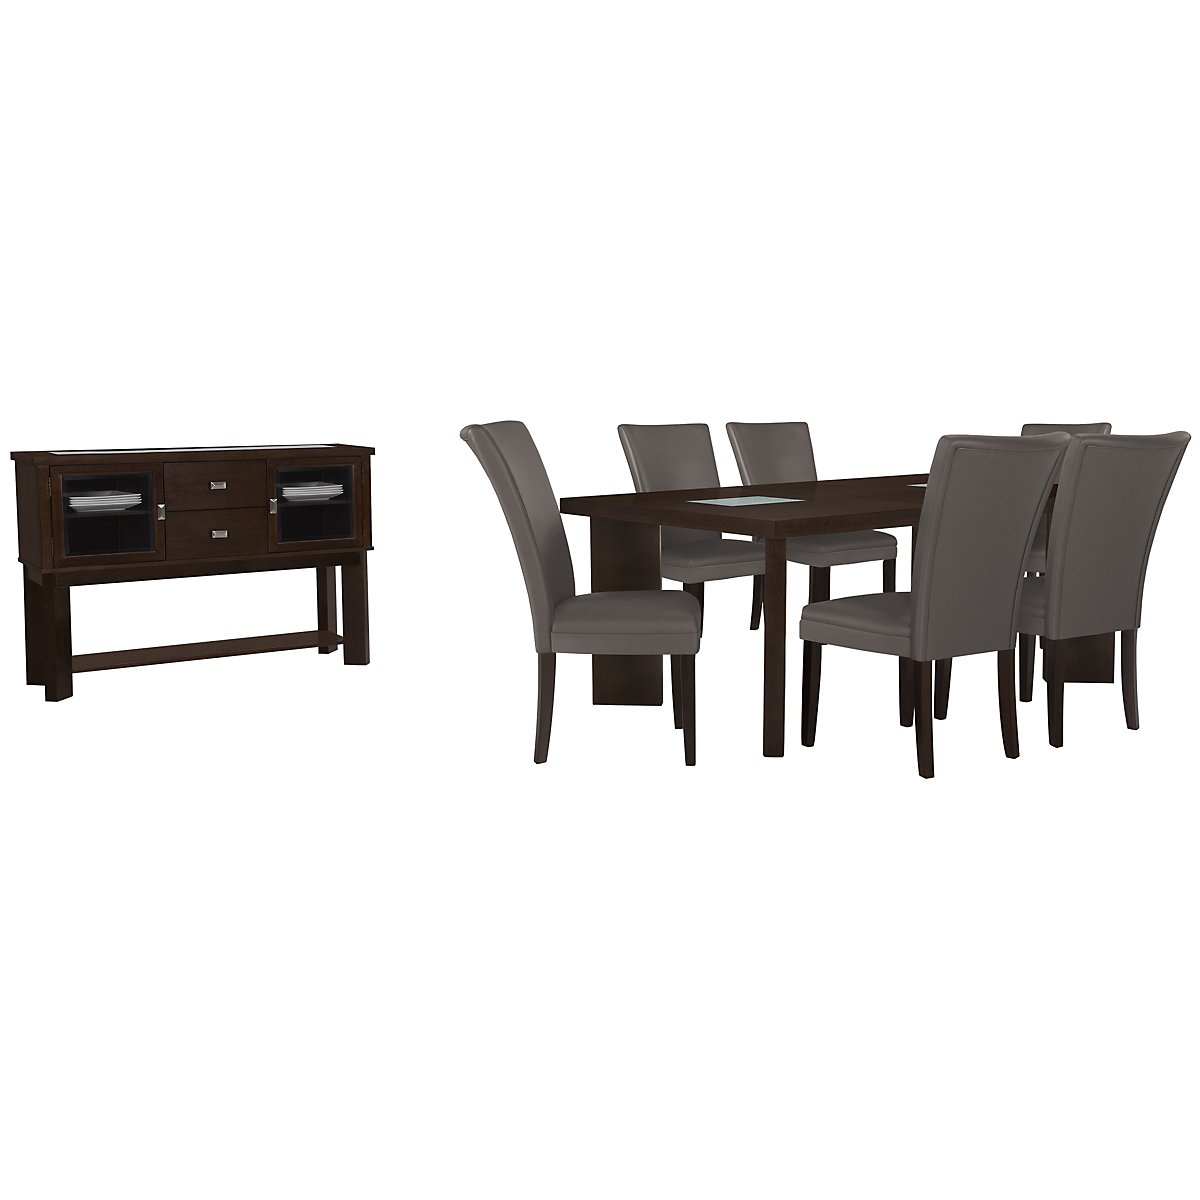 Delano2 Dark Gray Dining Room